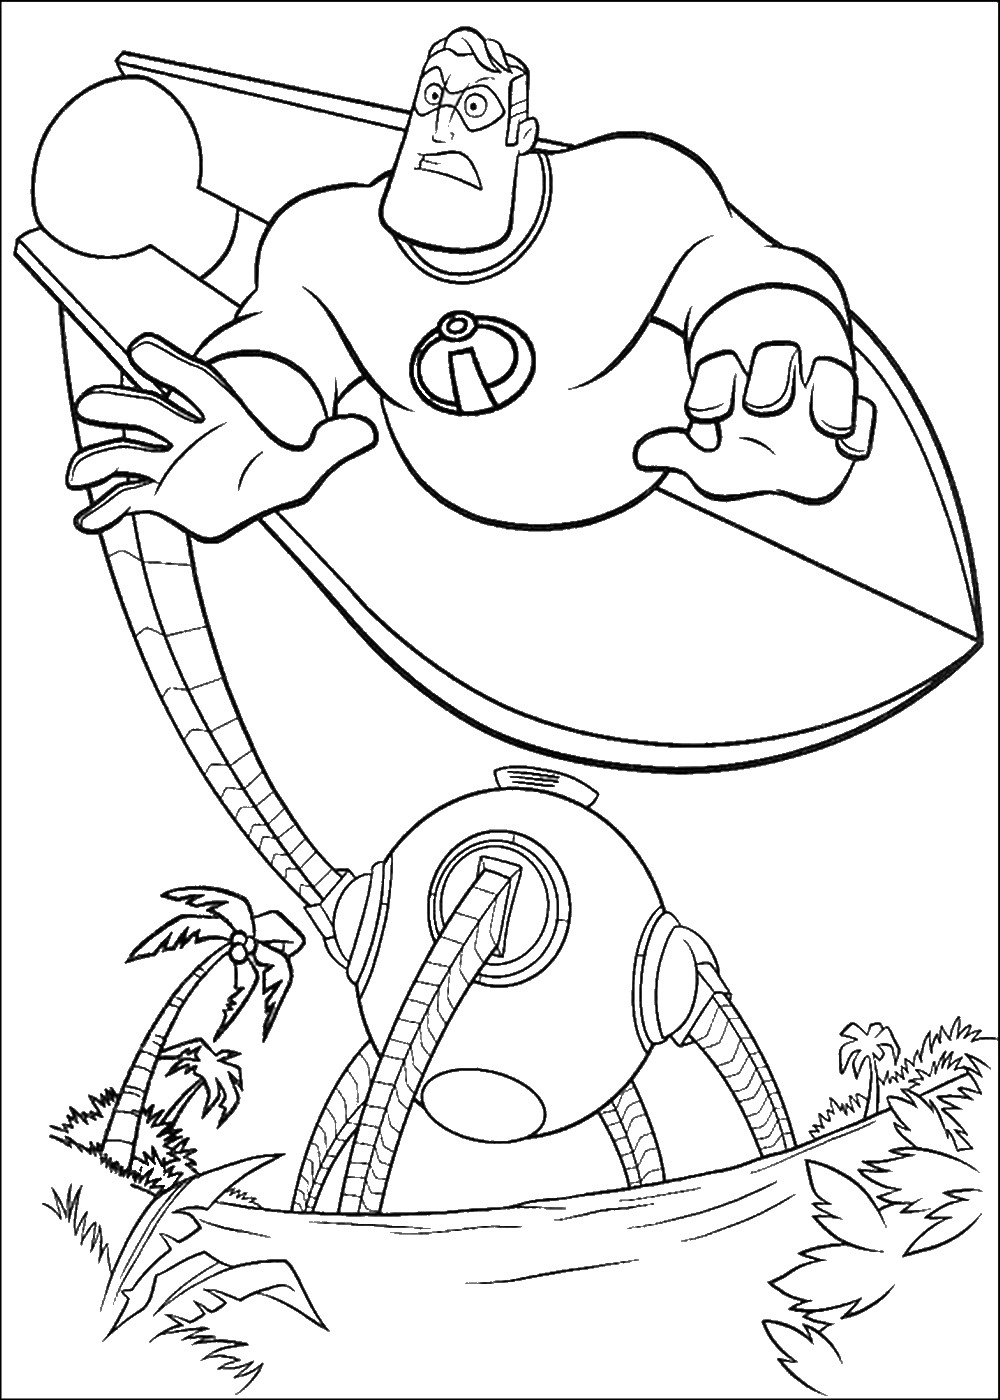 free coloring book pages free coloring pages printables a girl and a glue gun coloring book pages free